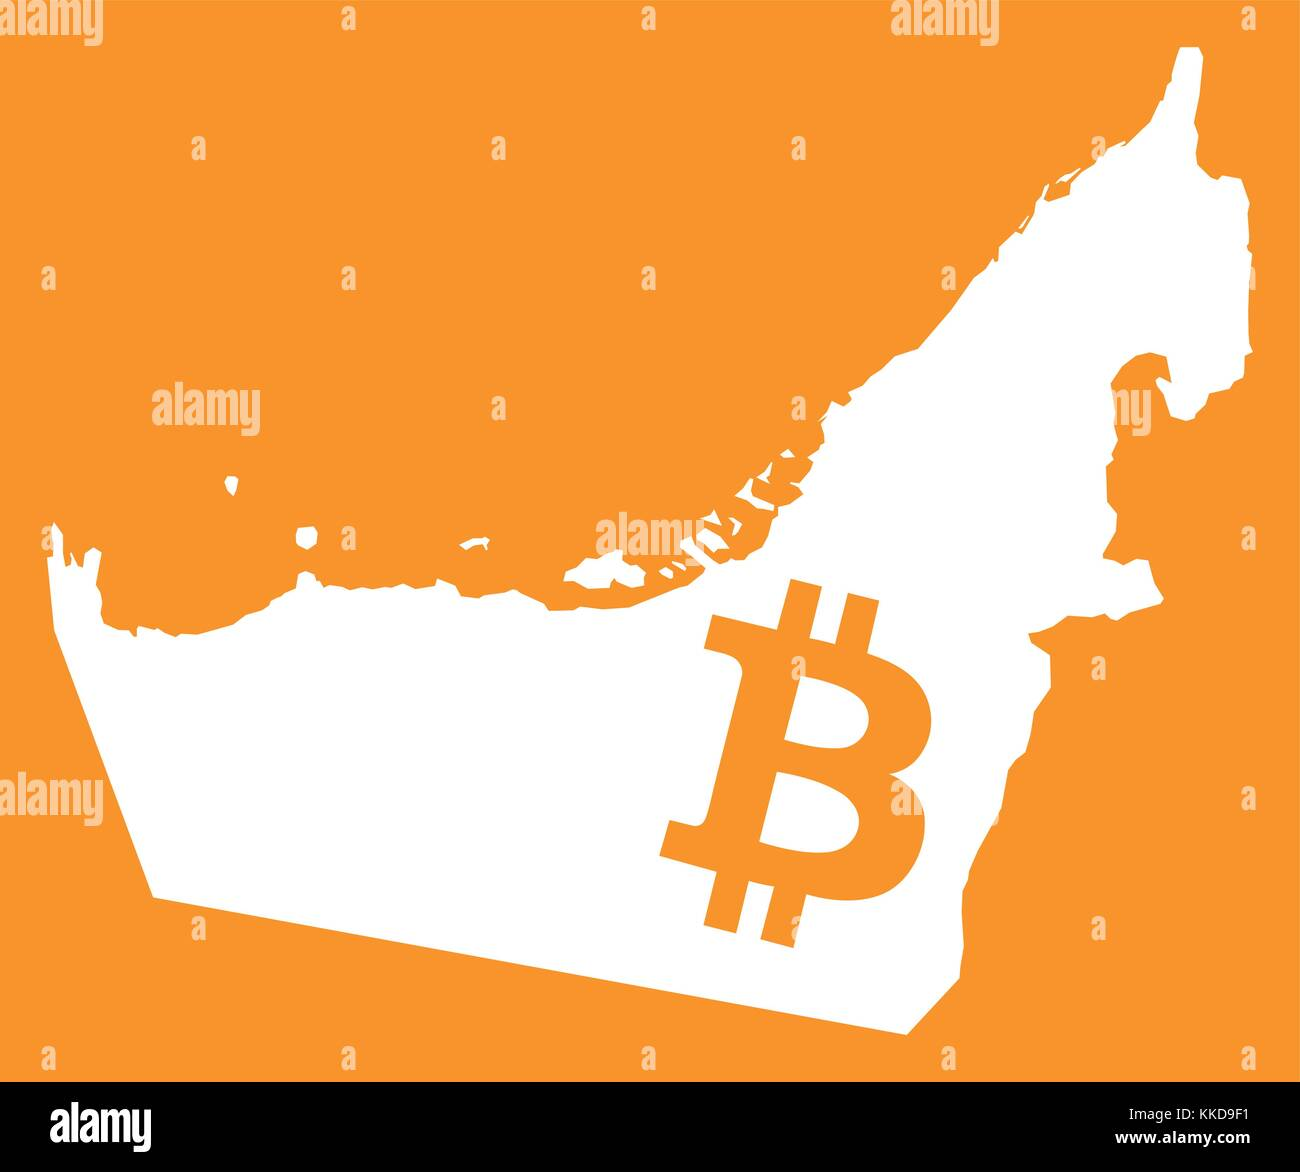 Currency symbol aed image collections symbols and meanings arab emirates coin stock photos arab emirates coin stock images united arab emirates map with bitcoin buycottarizona Gallery